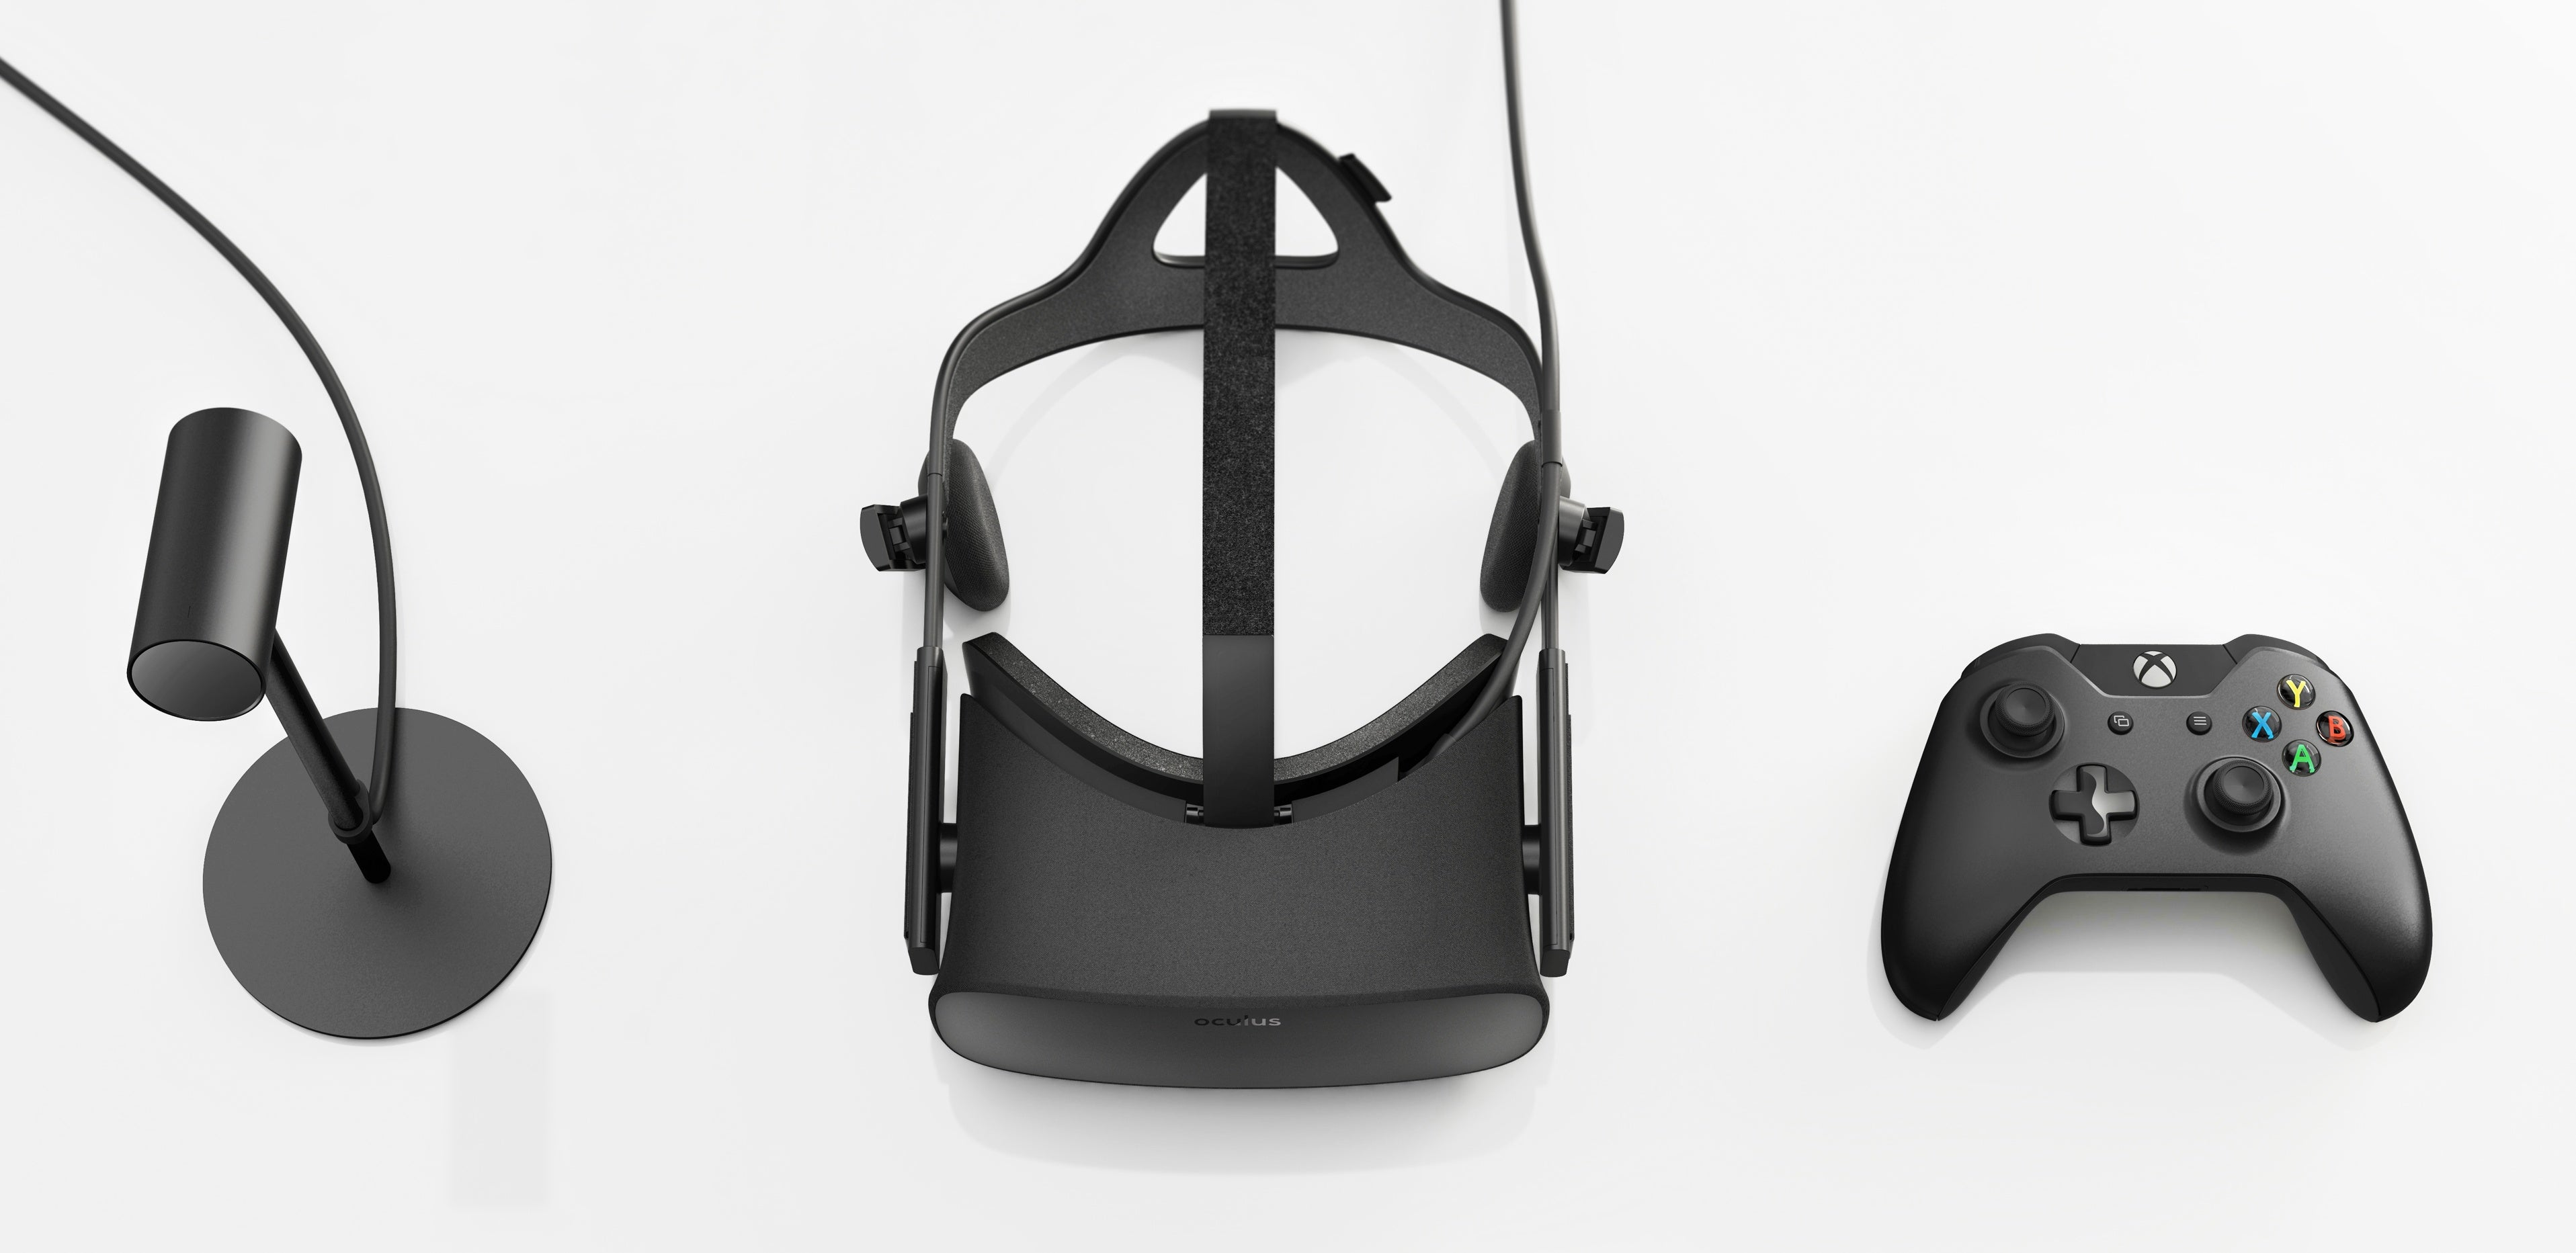 The Oculus Rift Has An Amazing Controller. Too Bad It's Sold Separately